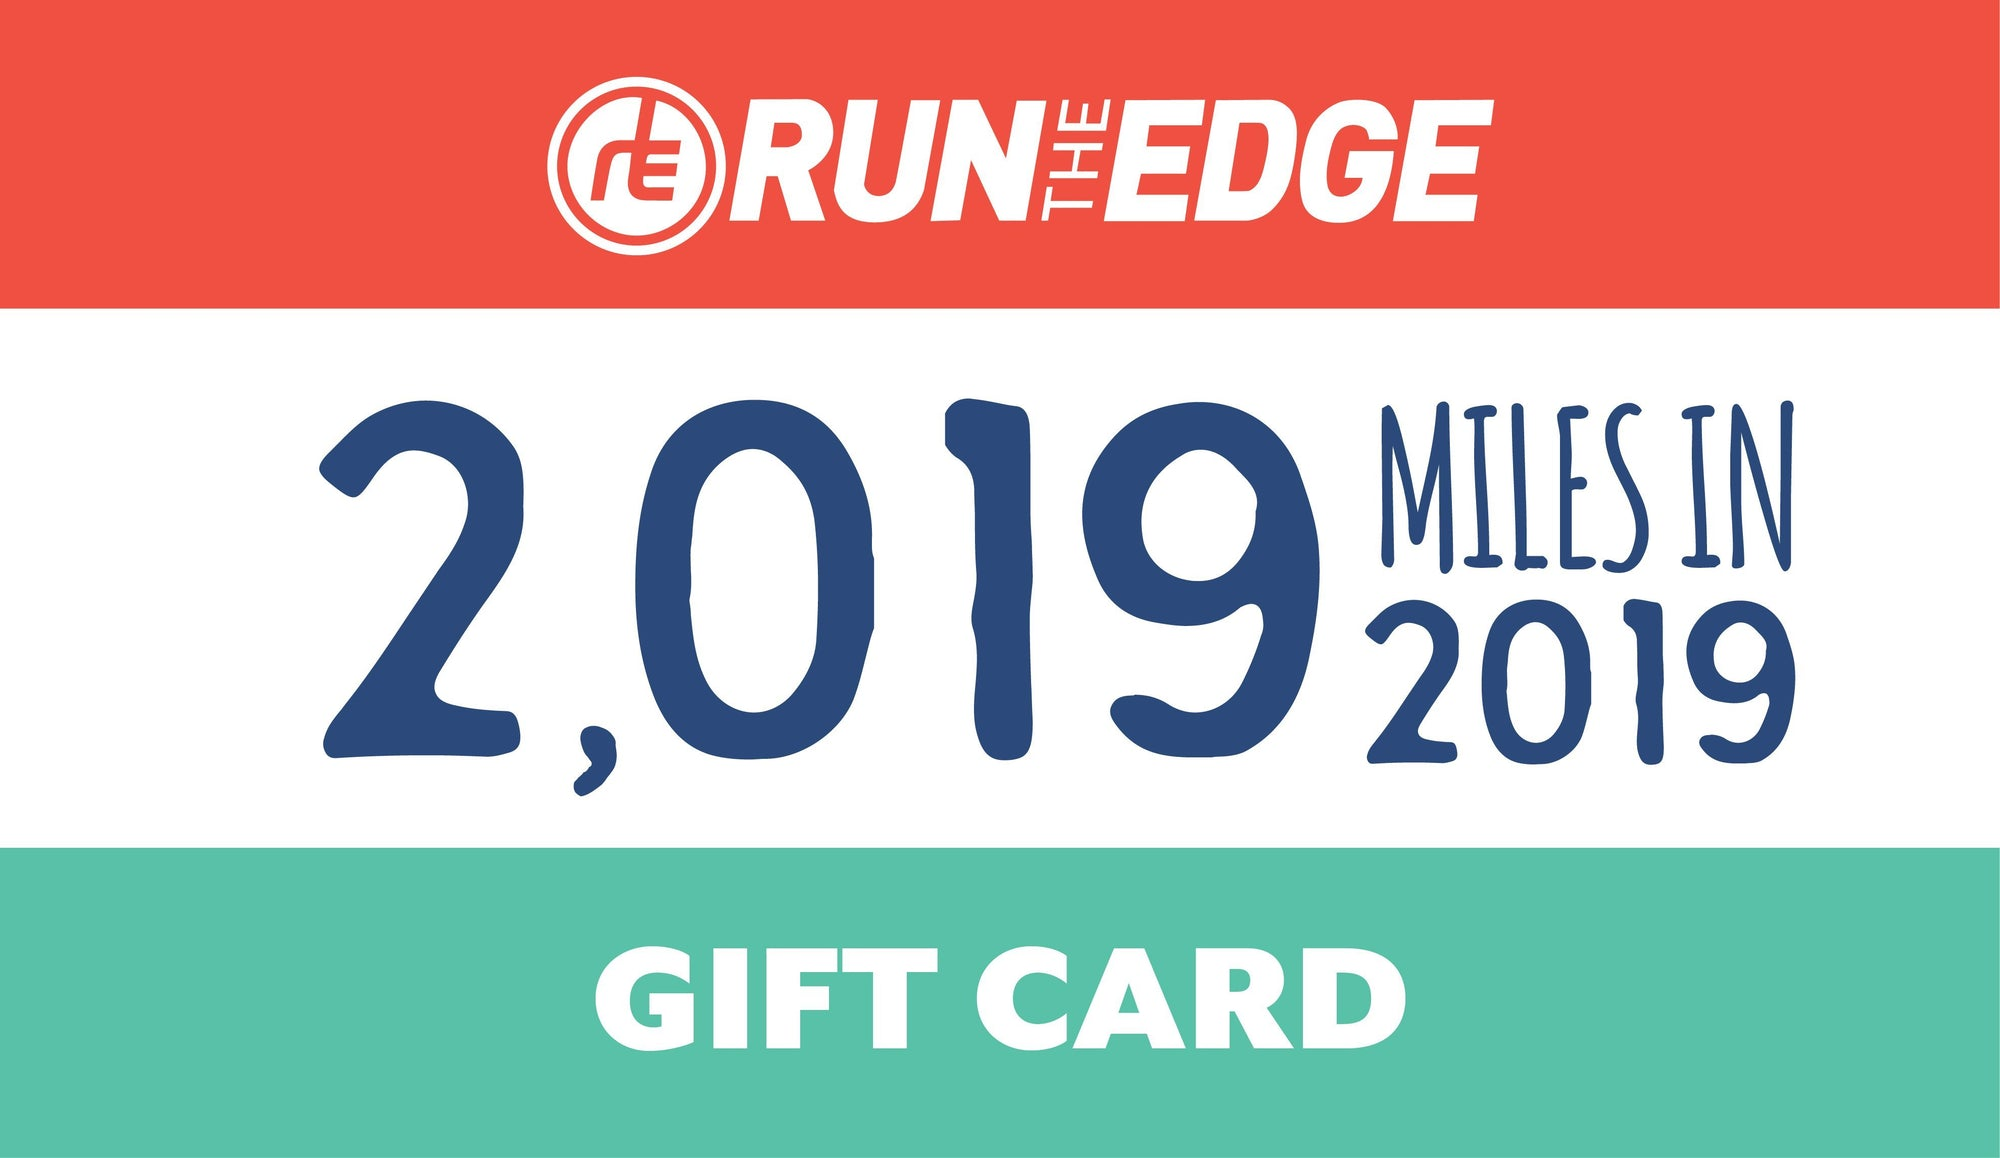 Run The Year 2019 Deluxe Registration Gift Card gift card Run The Edge